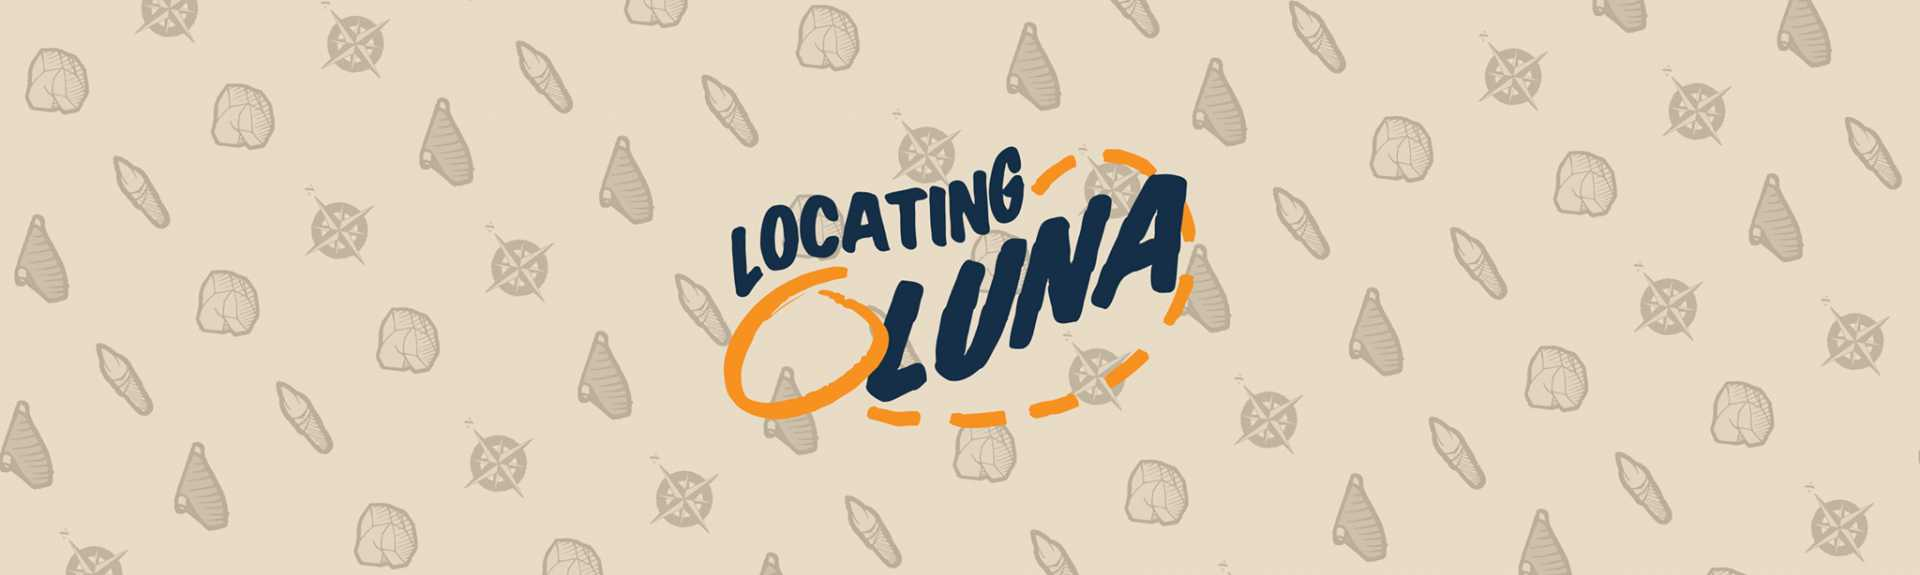 Locating Luna